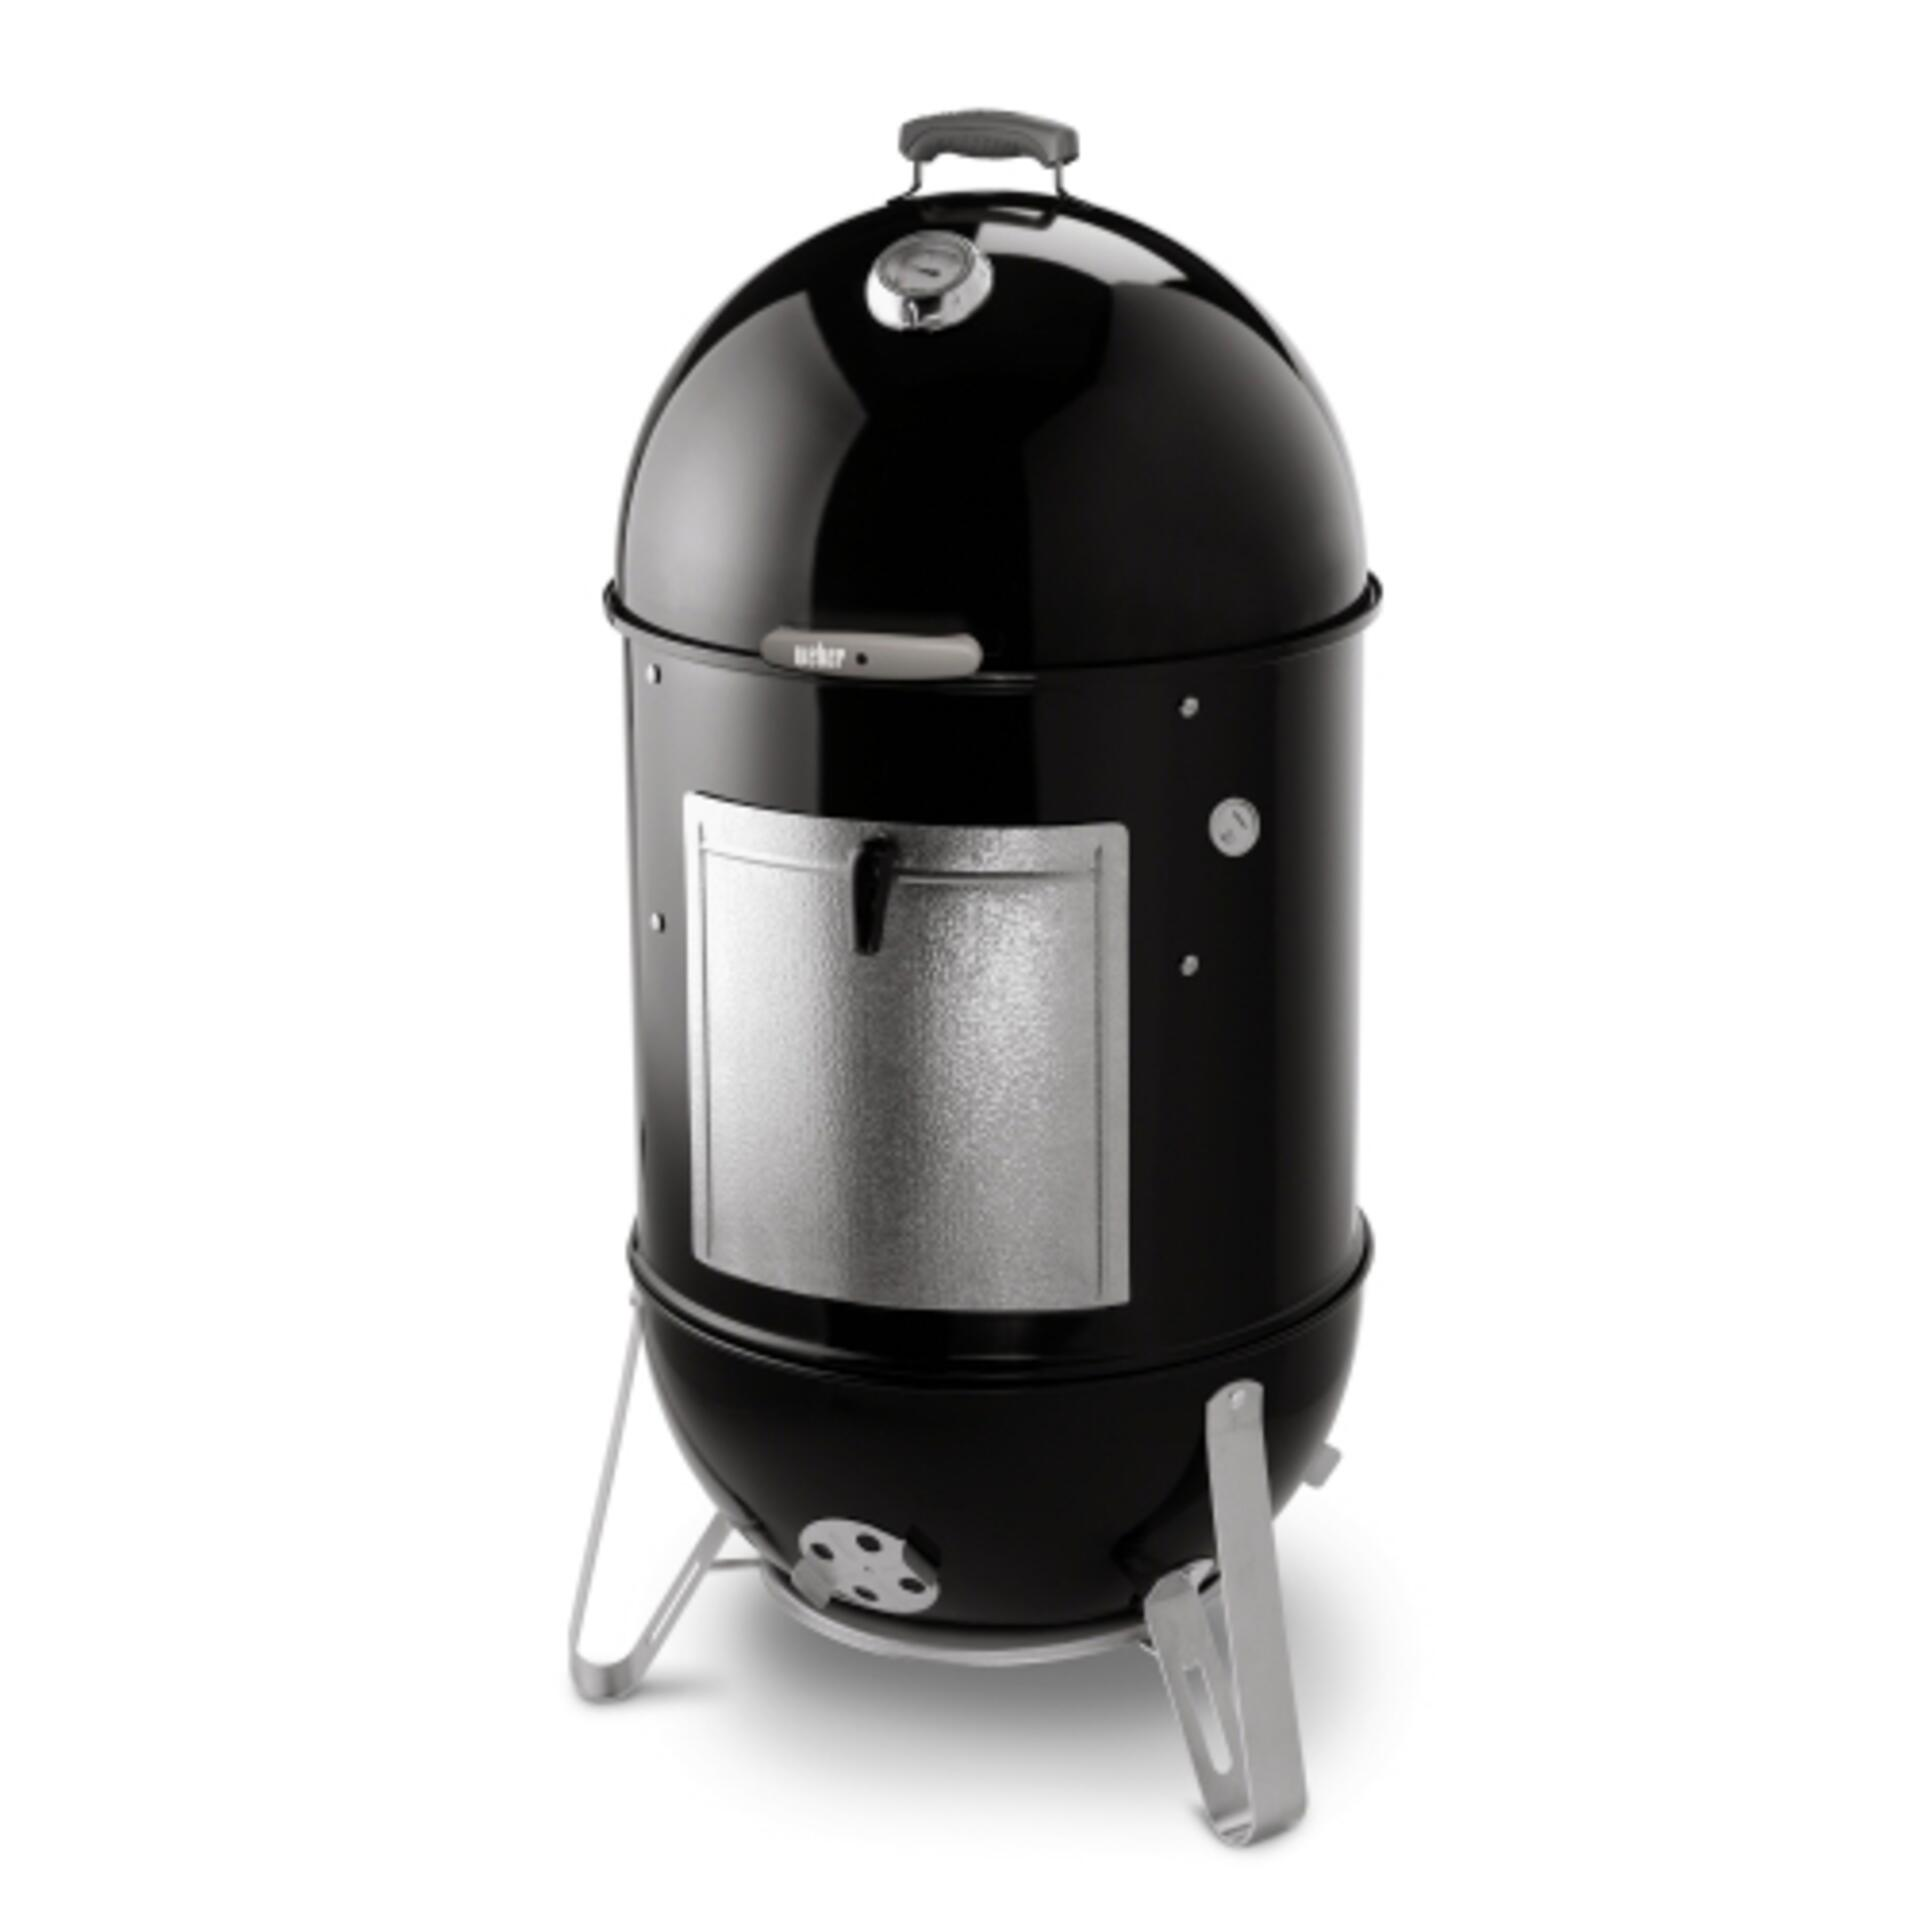 Weber Smokey Mountain Cooker 47 cm Black